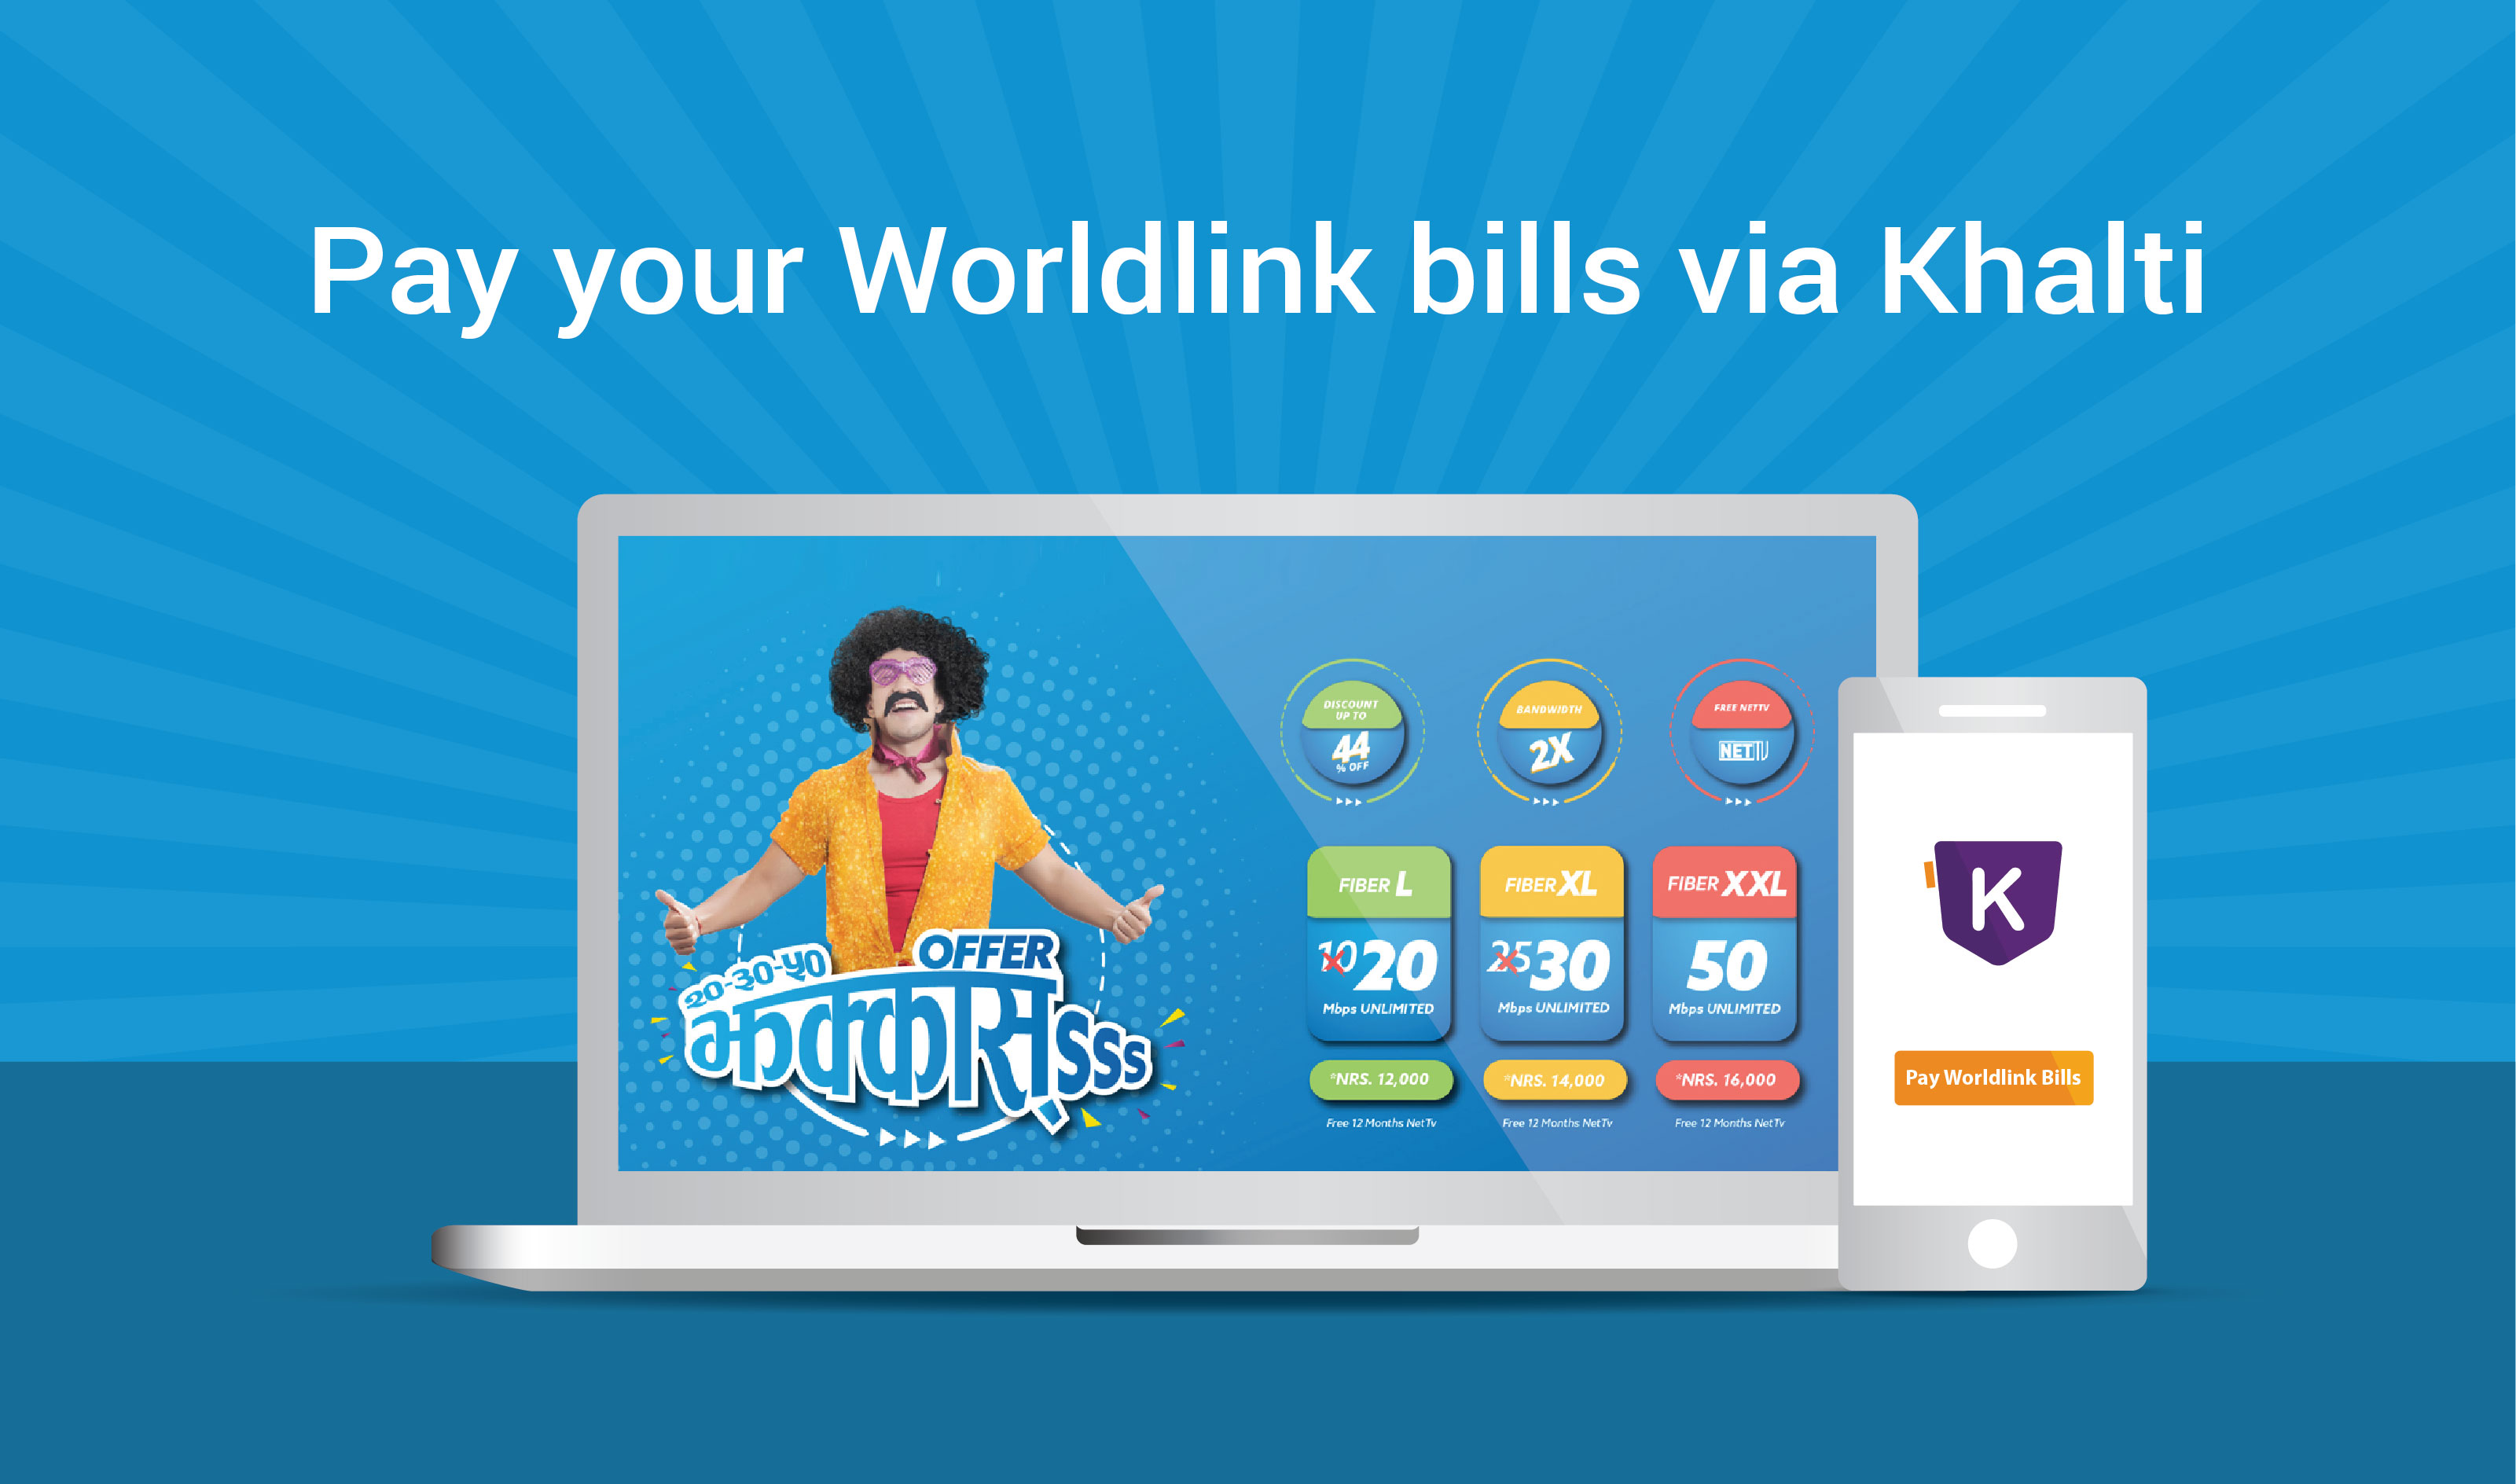 How to pay WorldLink bill online using Khalti?